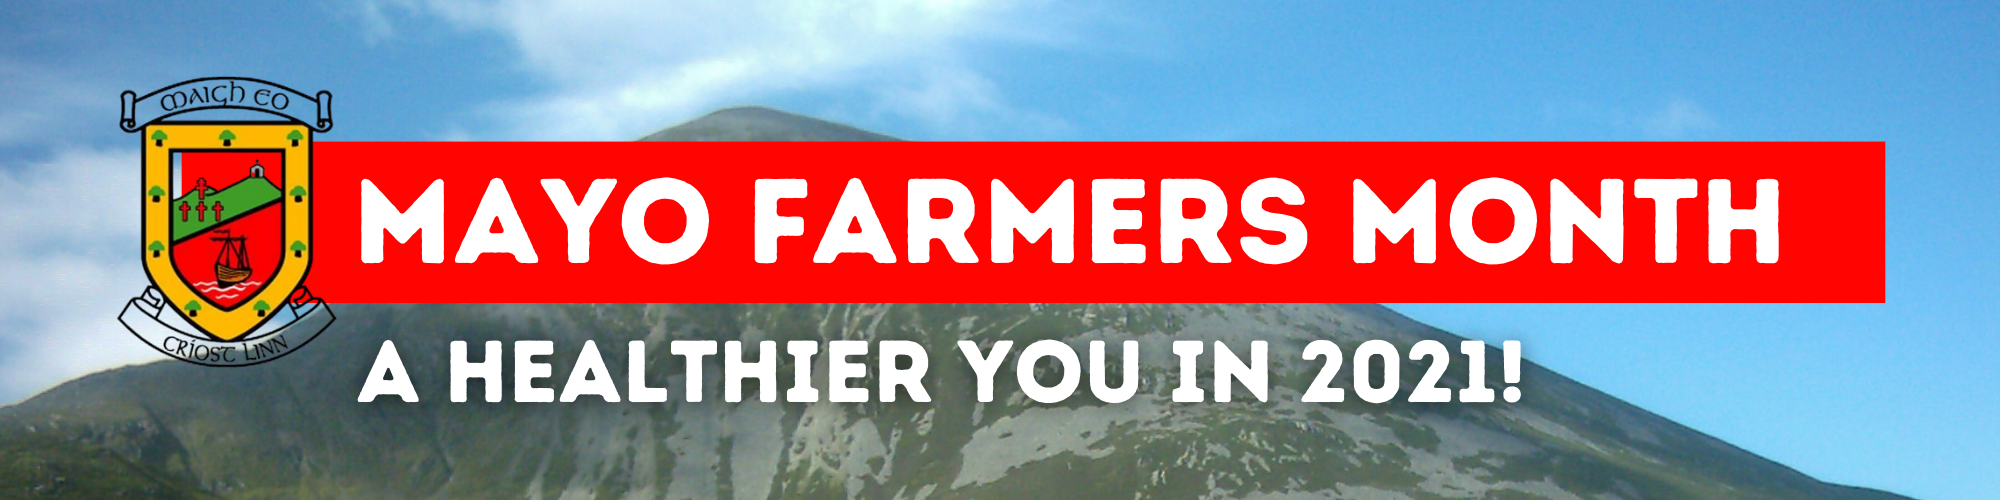 Farmers project - Press release page banner